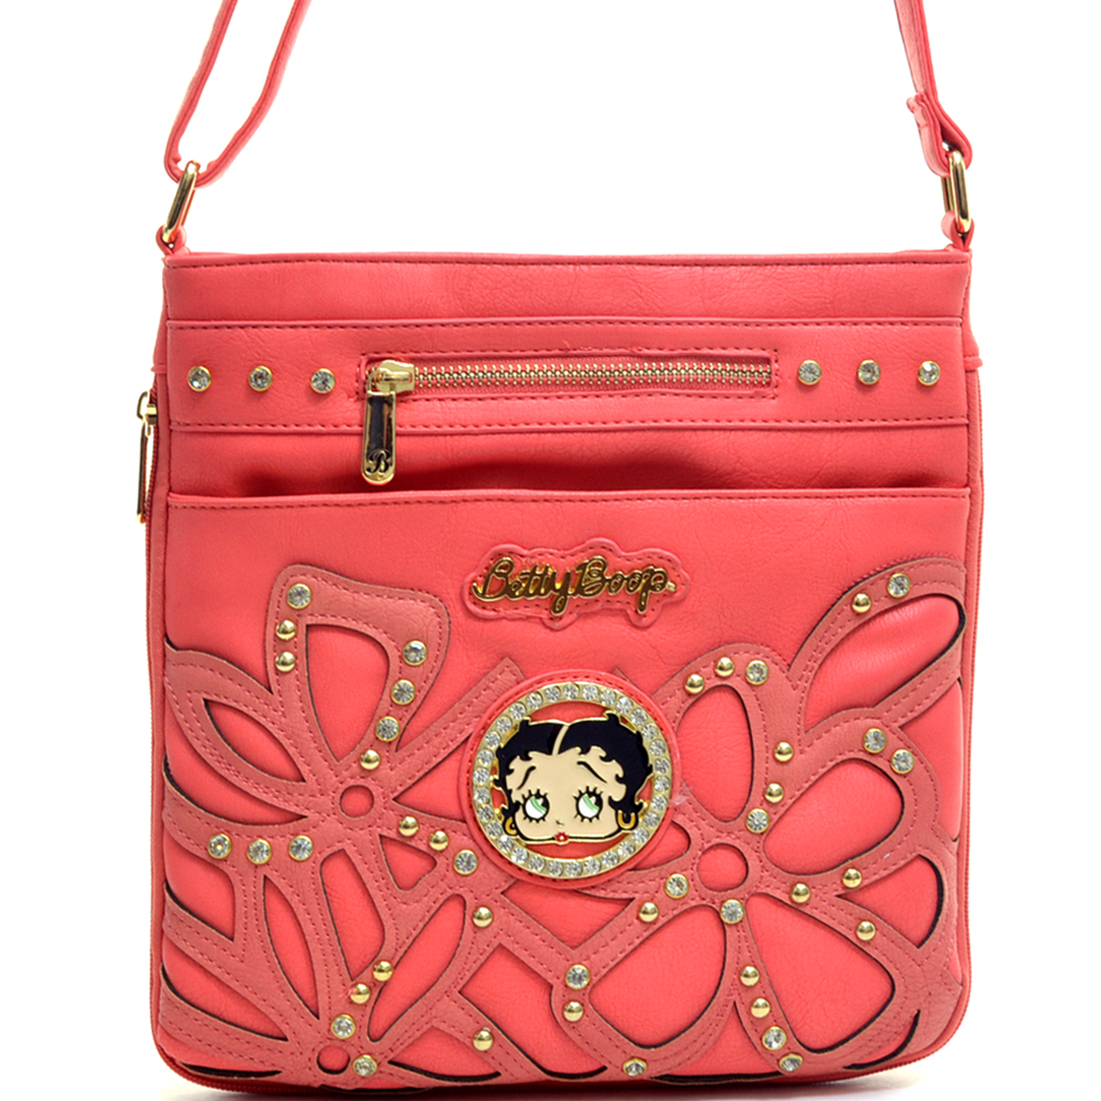 Betty Boop® Floral Stitched Rhinestone and Studs Shoulder Bag